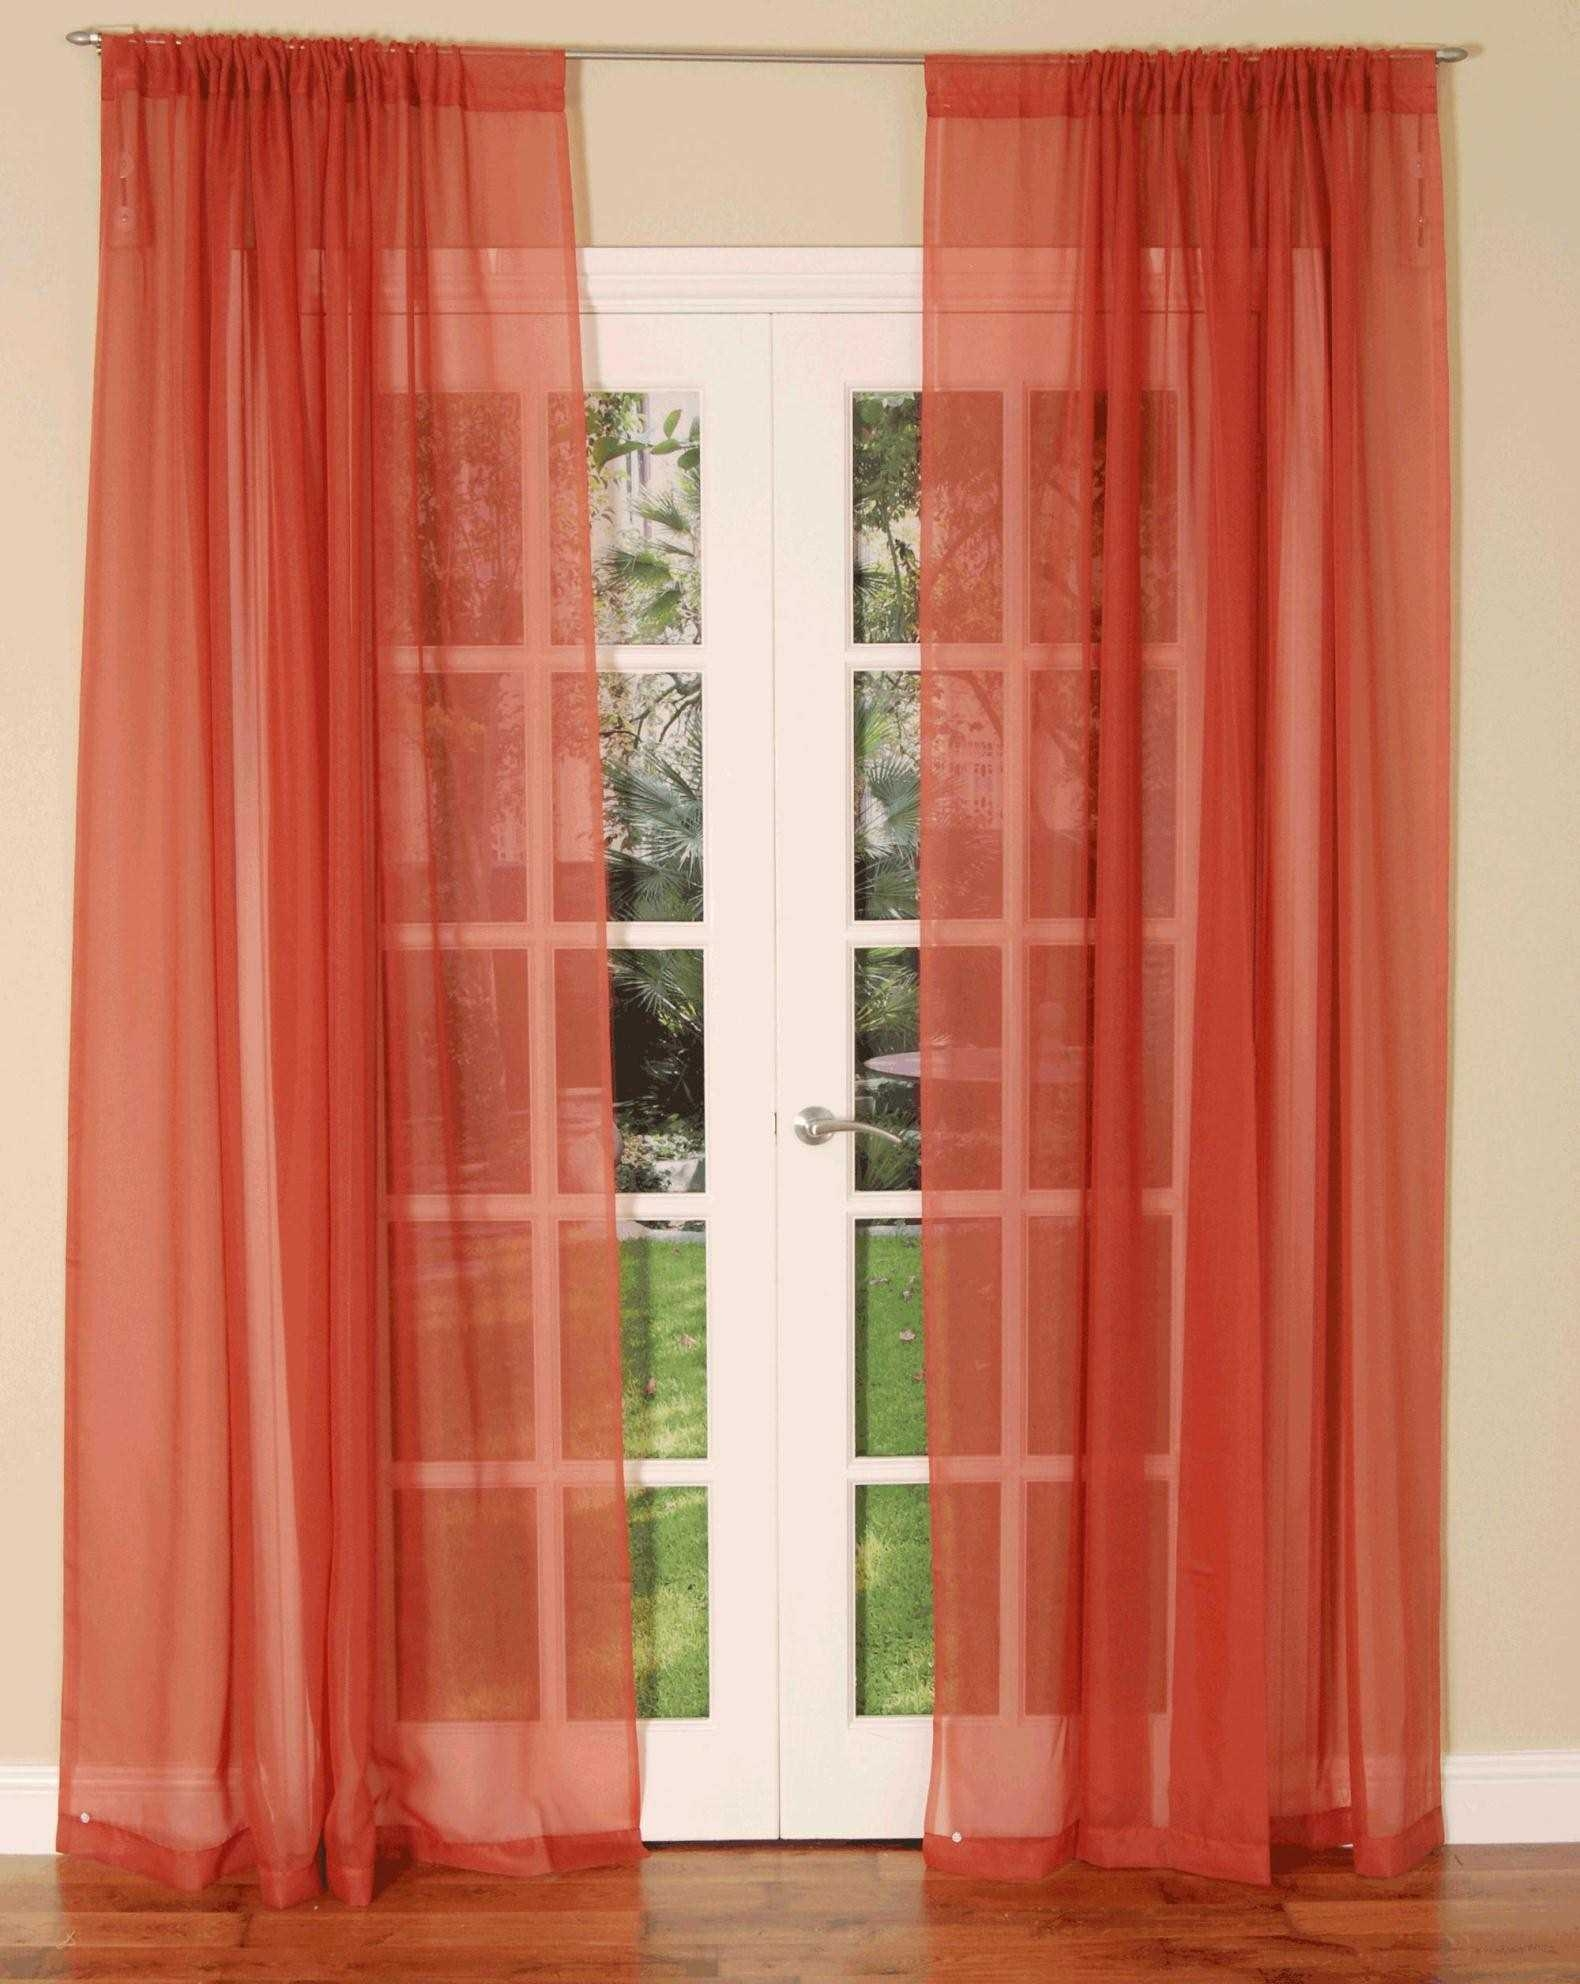 Curtain Peach Colored Curtains 11 Of 25 Photos